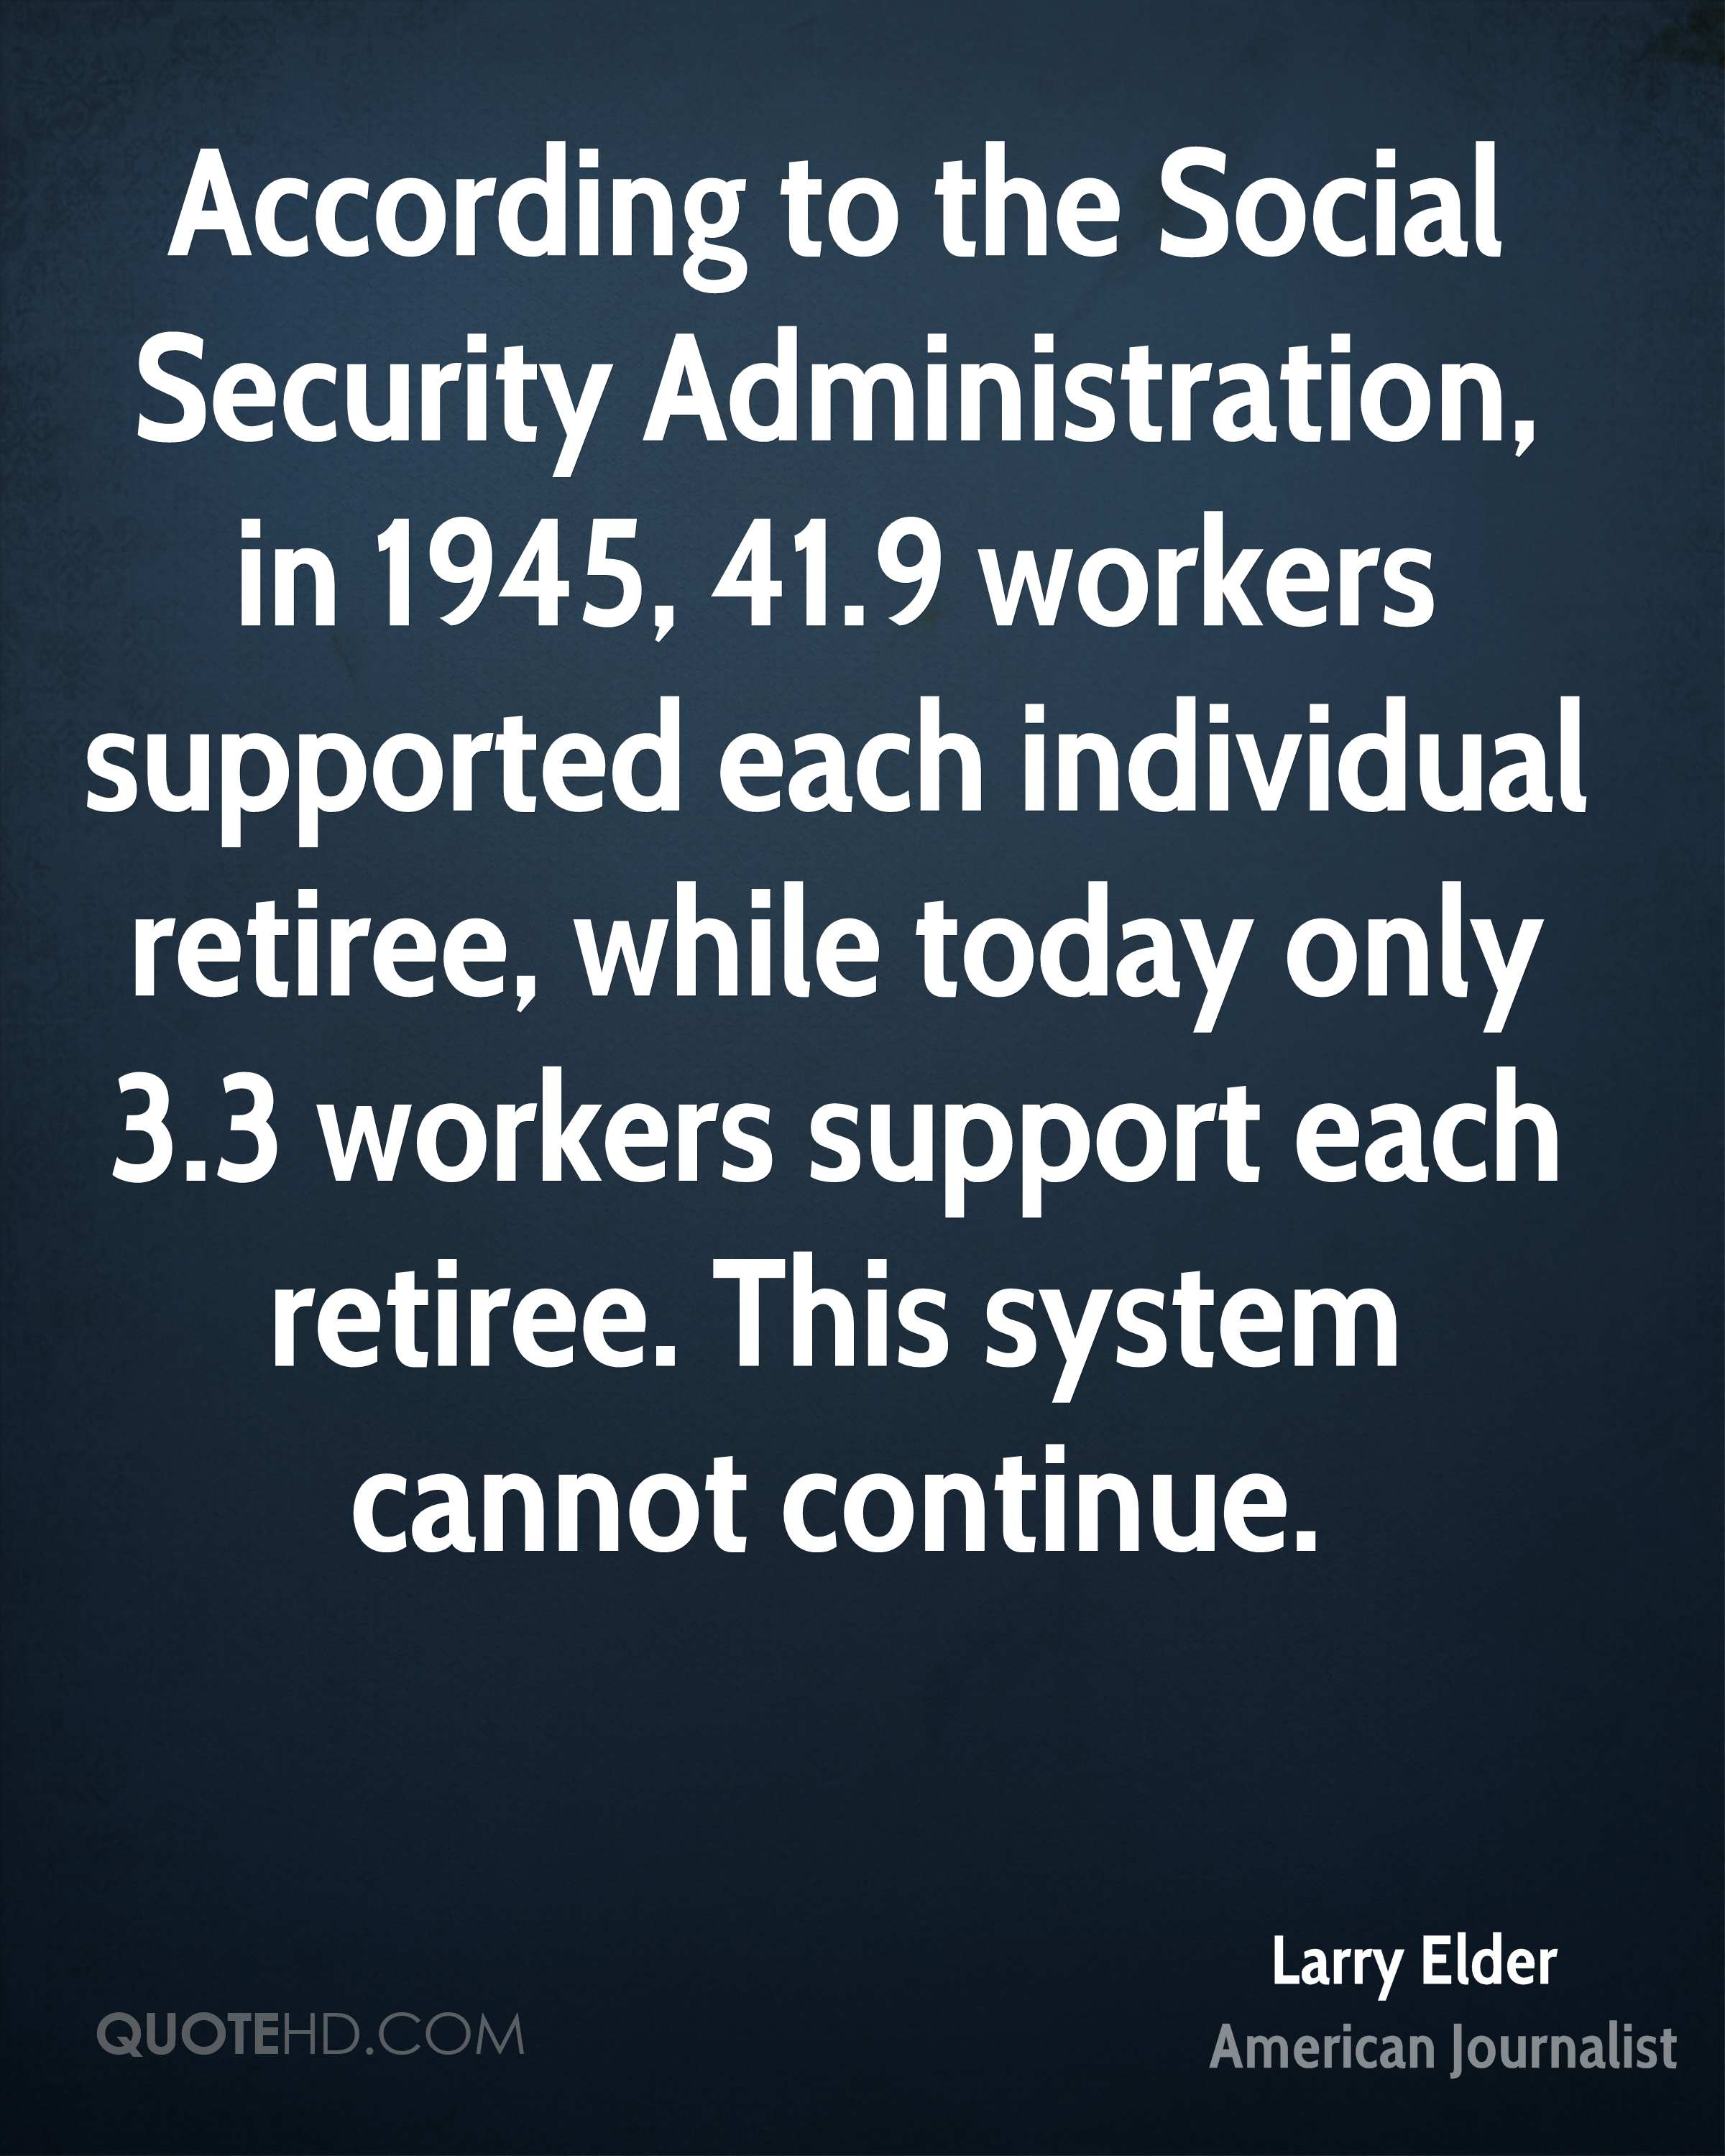 According to the Social Security Administration, in 1945, 41.9 workers supported each individual retiree, while today only 3.3 workers support each retiree. This system cannot continue.